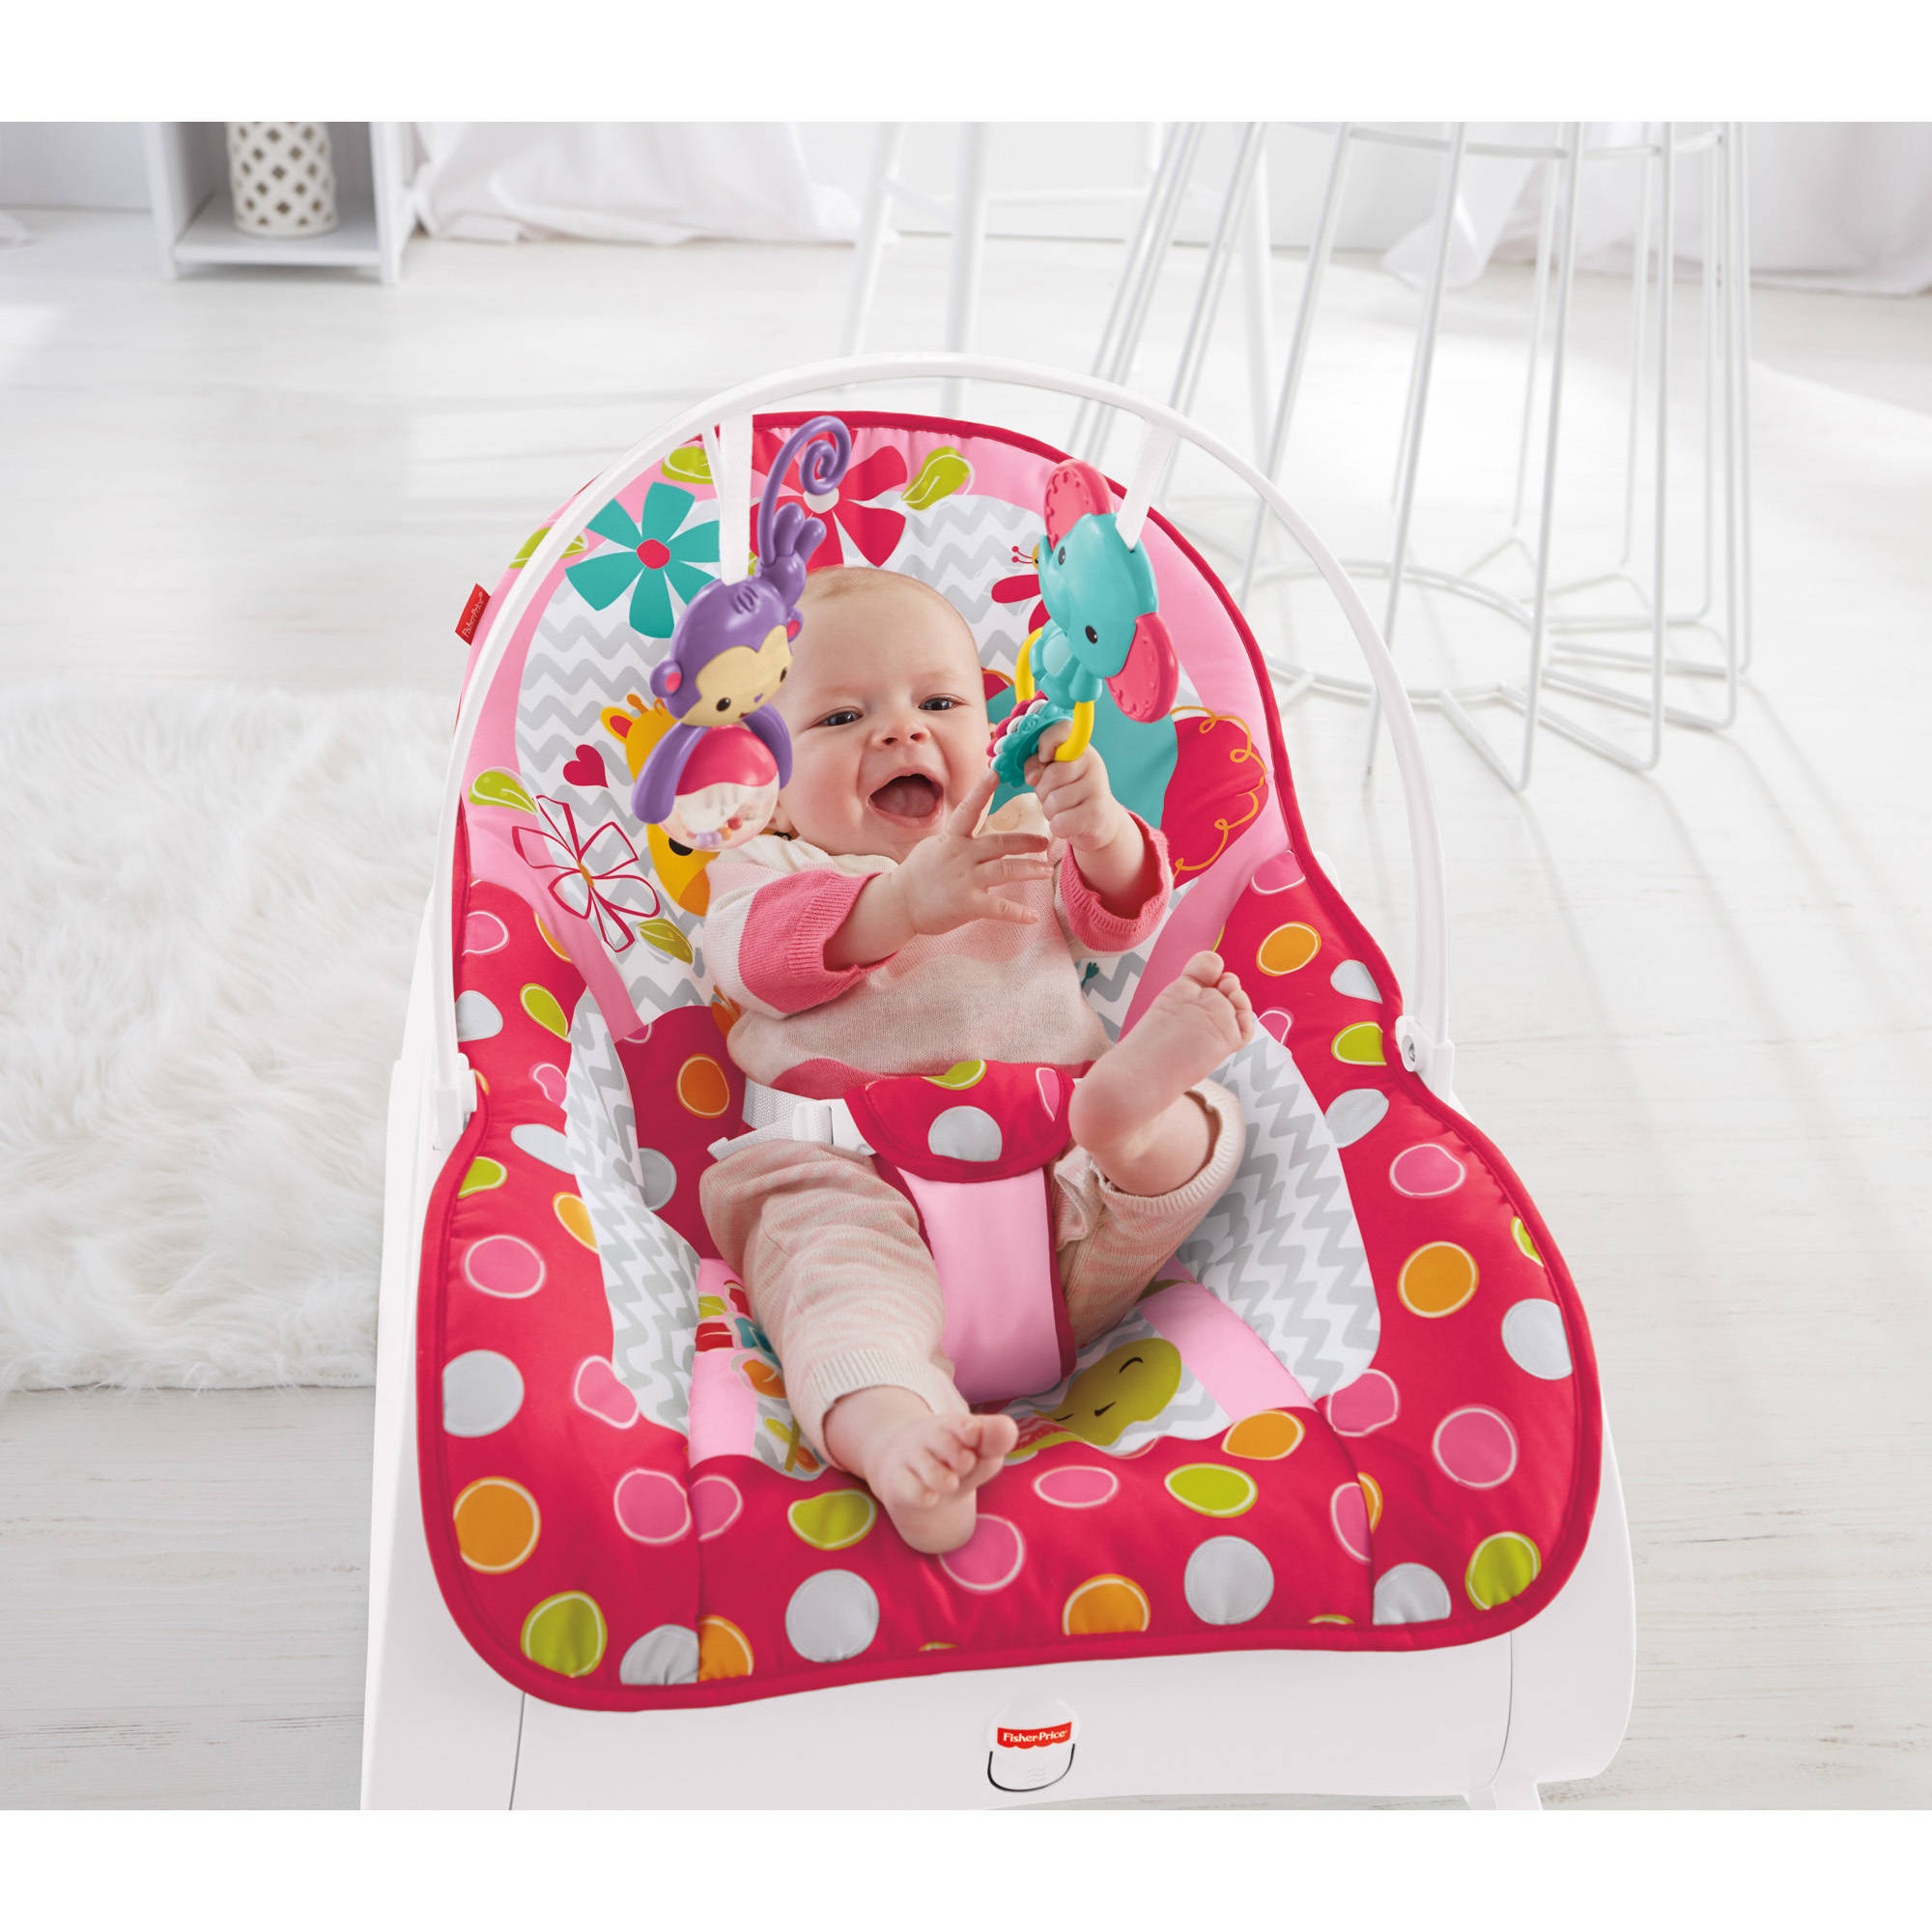 0767a4d581a Fisher-Price Infant-To-Toddler Rocker - Walmart.com